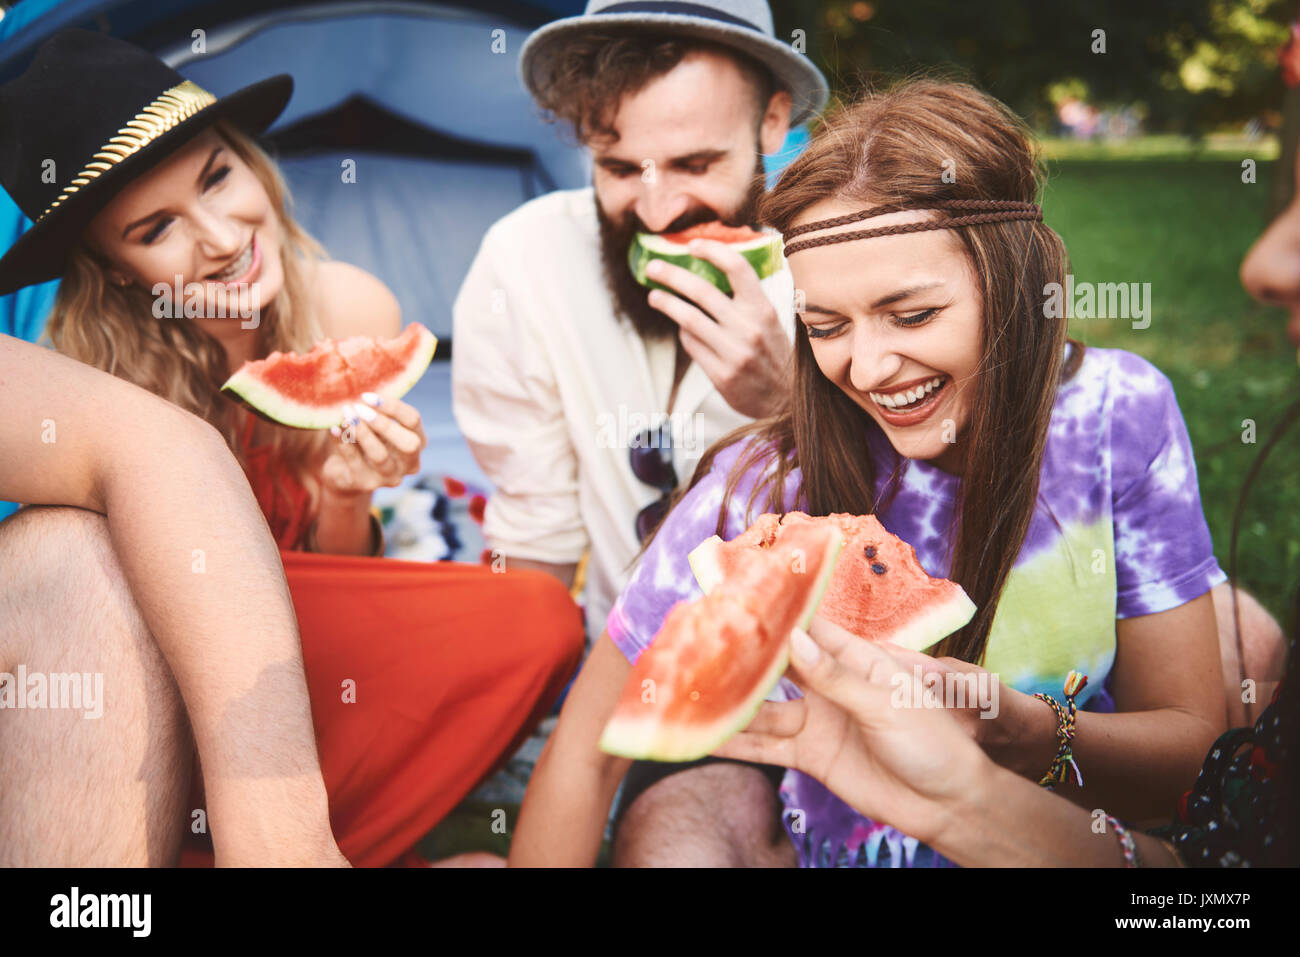 Young boho adult friends eating melon slices at festival - Stock Image